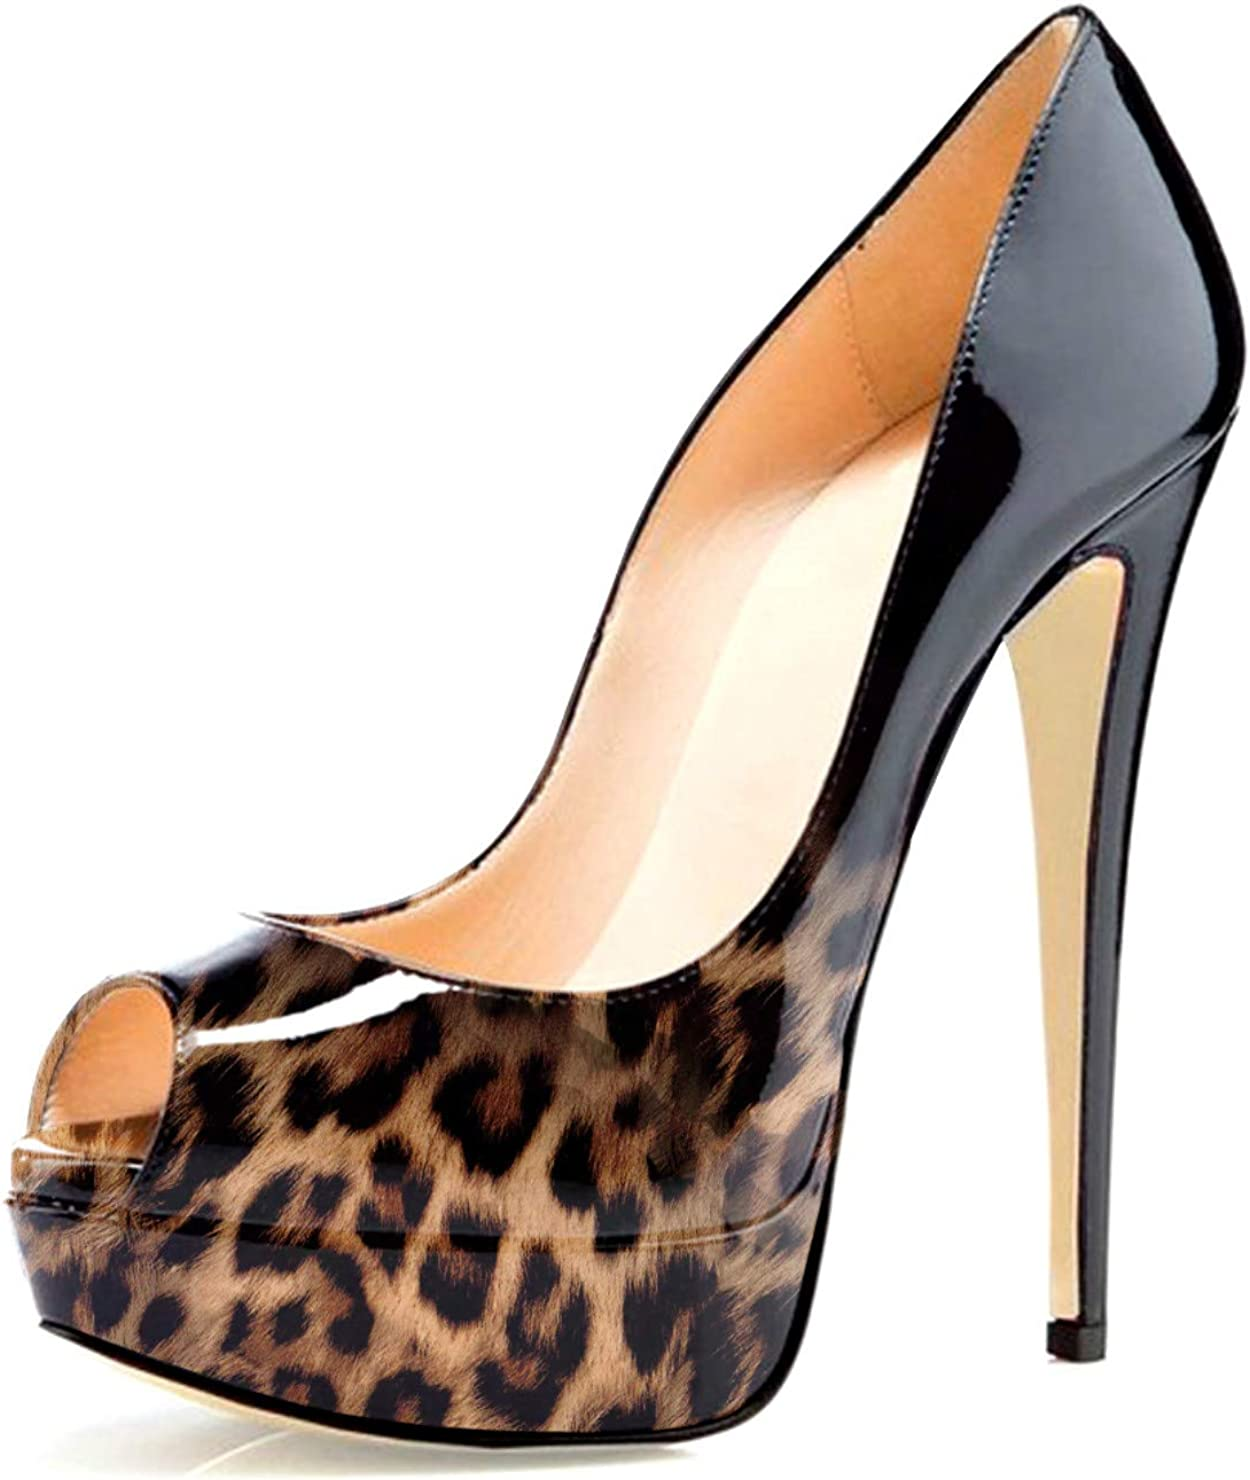 Mettesally Sandales Plateforme Femme,Sandales Bout Ouvert Femme,Club Soiree Chaussures